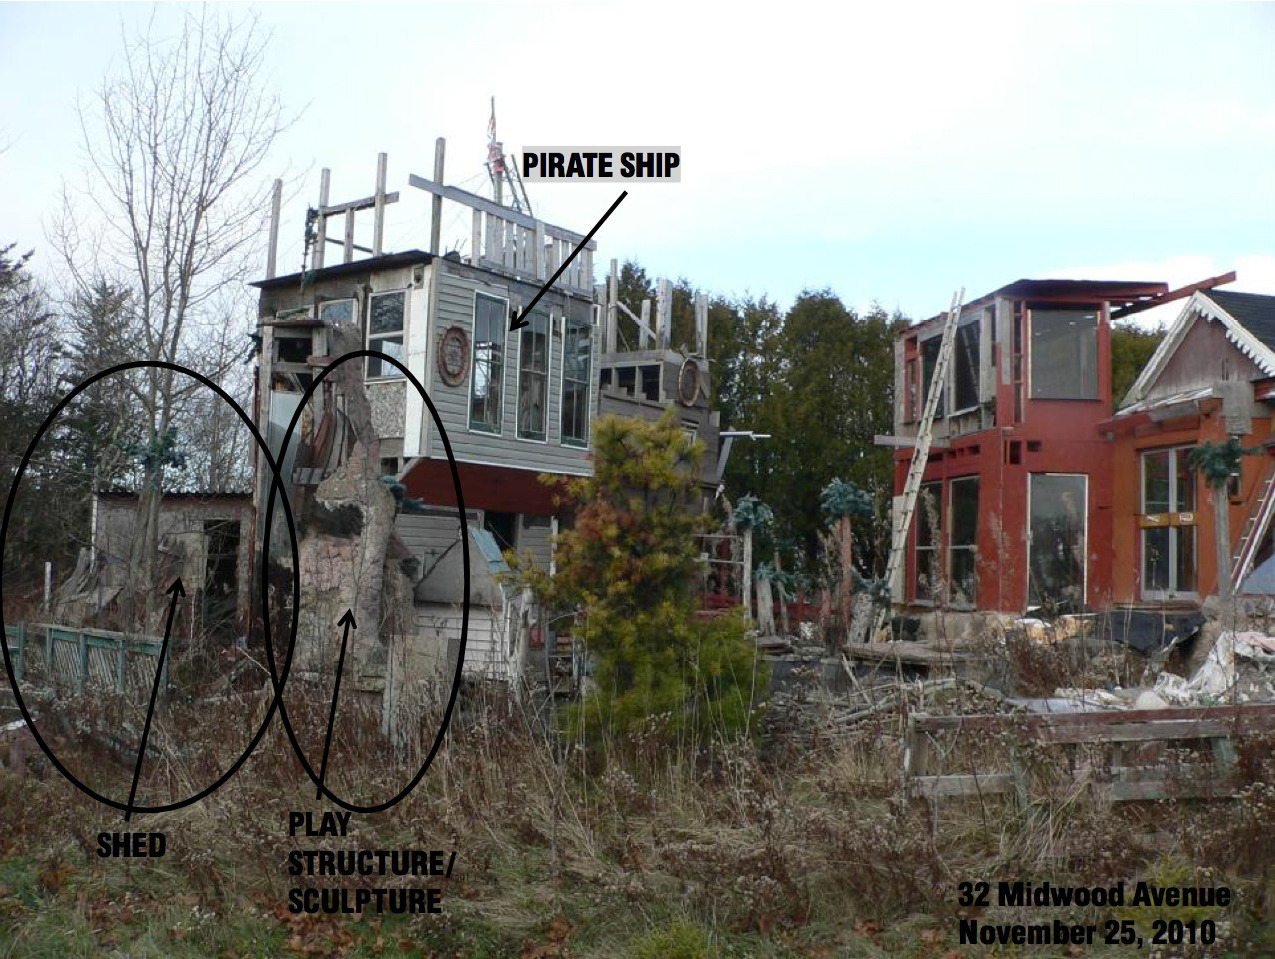 "Saint John to sink backyard 'pirate ship'A three-storey-high pirate ship constructed out of old wood, window panes and scrap metal, it has two floors and a roof, wood panels jutting out from its sides and a number of ""trees"" made from rubber foliage atop wood beams. Seven years in the making, Rodney McGrath's ""enchanted kingdom"" is anchored in the backyard behind his Saint John home.It's ""beautiful,"" Mr. McGrath said, and it only truly comes alive in the mornings, when the sun first hits it.Several of his neighbours on Midwood Avenue disagree. They lodged complaints with the city, saying the pirate ship is not just ugly, but a hazard. They worry it is bringing down property values on their street.After two years of battles between Mr. McGrath and the city over the playhouse, officials will arrive at his home Wednesday with two contractors in tow. They will estimate the cost of demolition, after which the pirate ship will be torn down and Mr. McGrath billed."